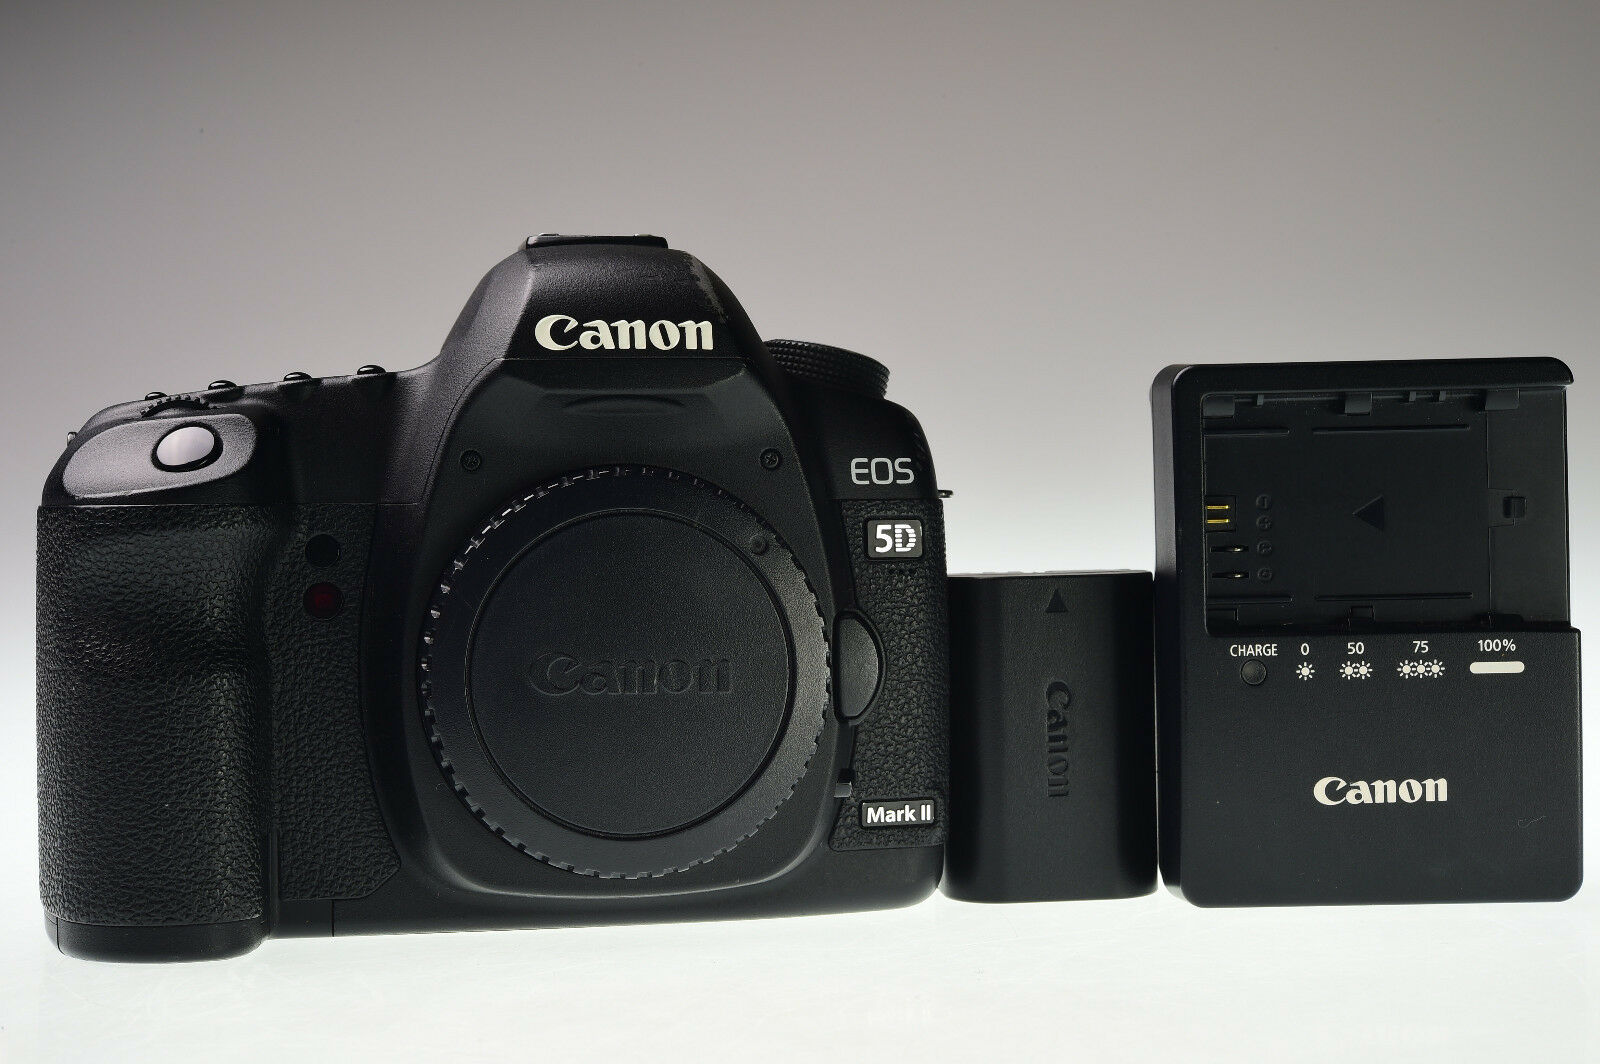 Canon Eos 5D Mark II Body 21.1MP Digital Camera Excellent